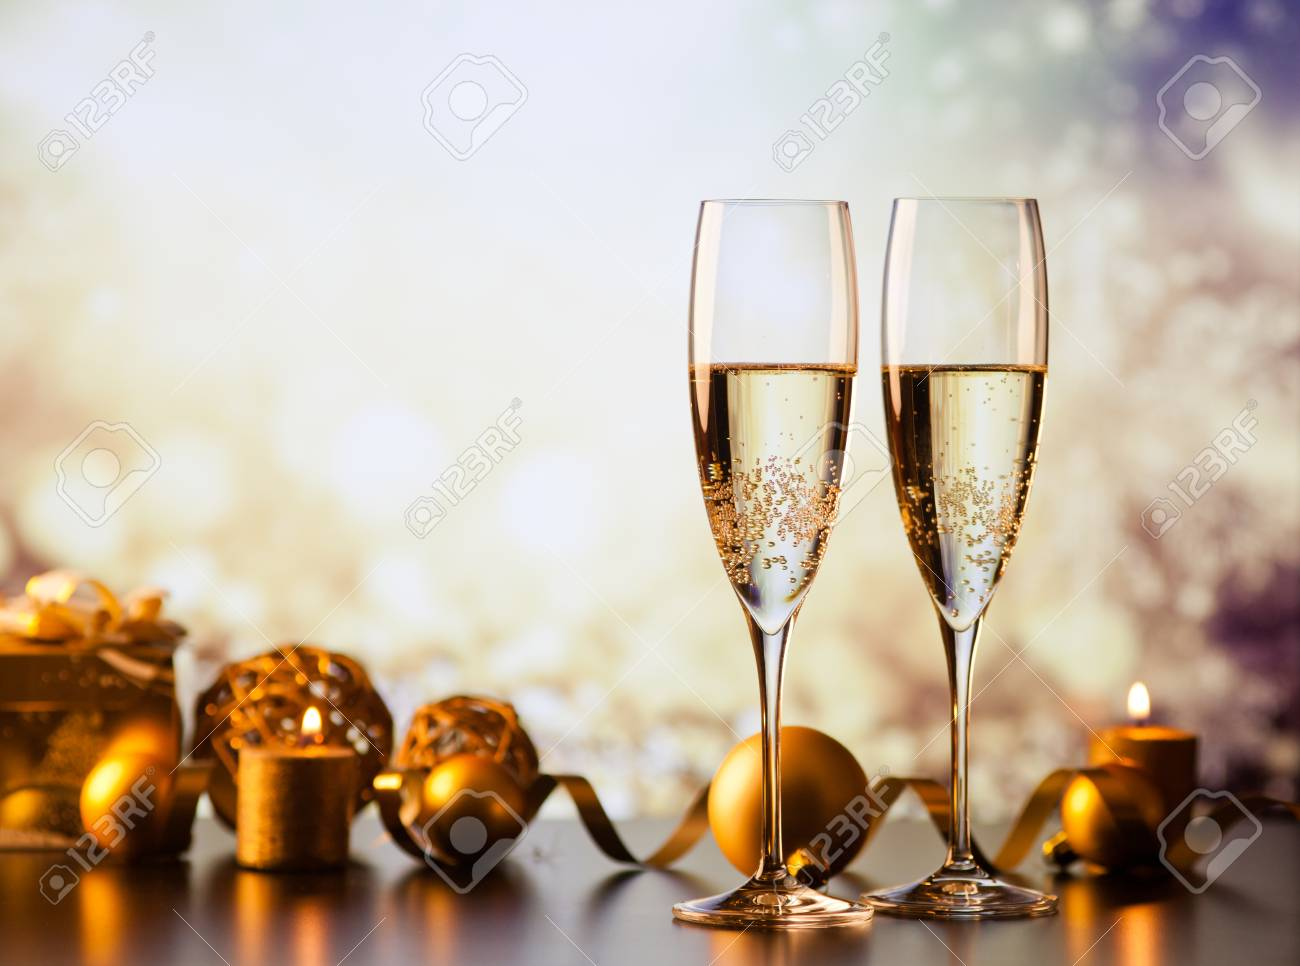 two champagne glasses against holiday lights and fireworks - new year celebration - 89411156